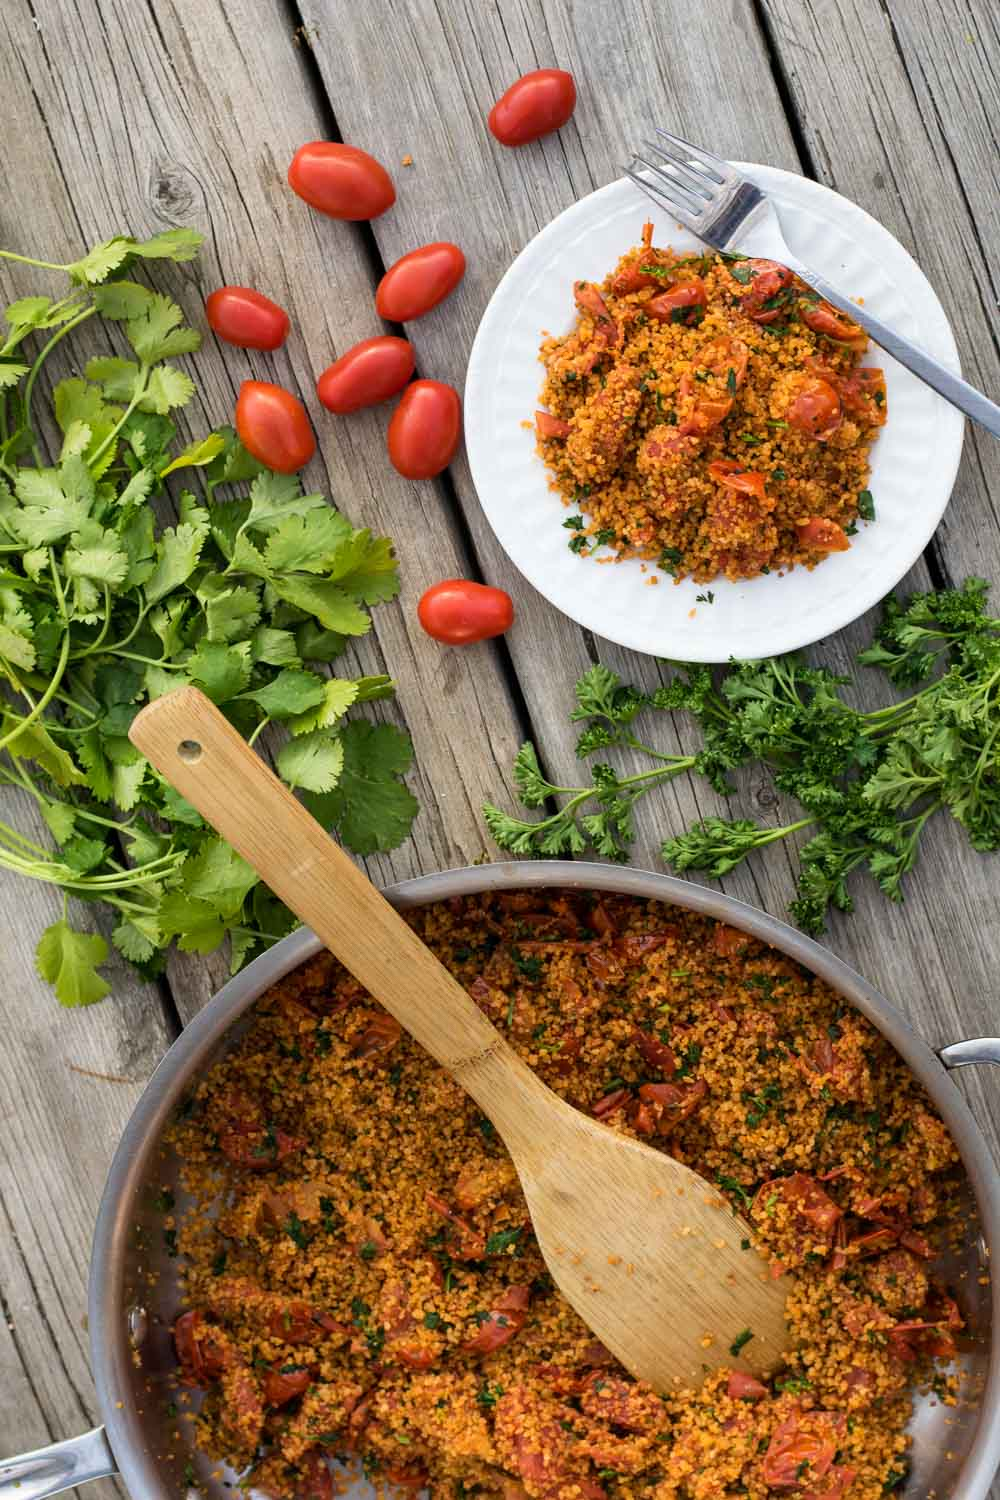 This simple, crowd-pleasing side dish of browned-butter-toasted couscous & sweet cherry tomatoes comes together in one pot, equally perfect for a quick weeknight meal or a lazy afternoon picnic!